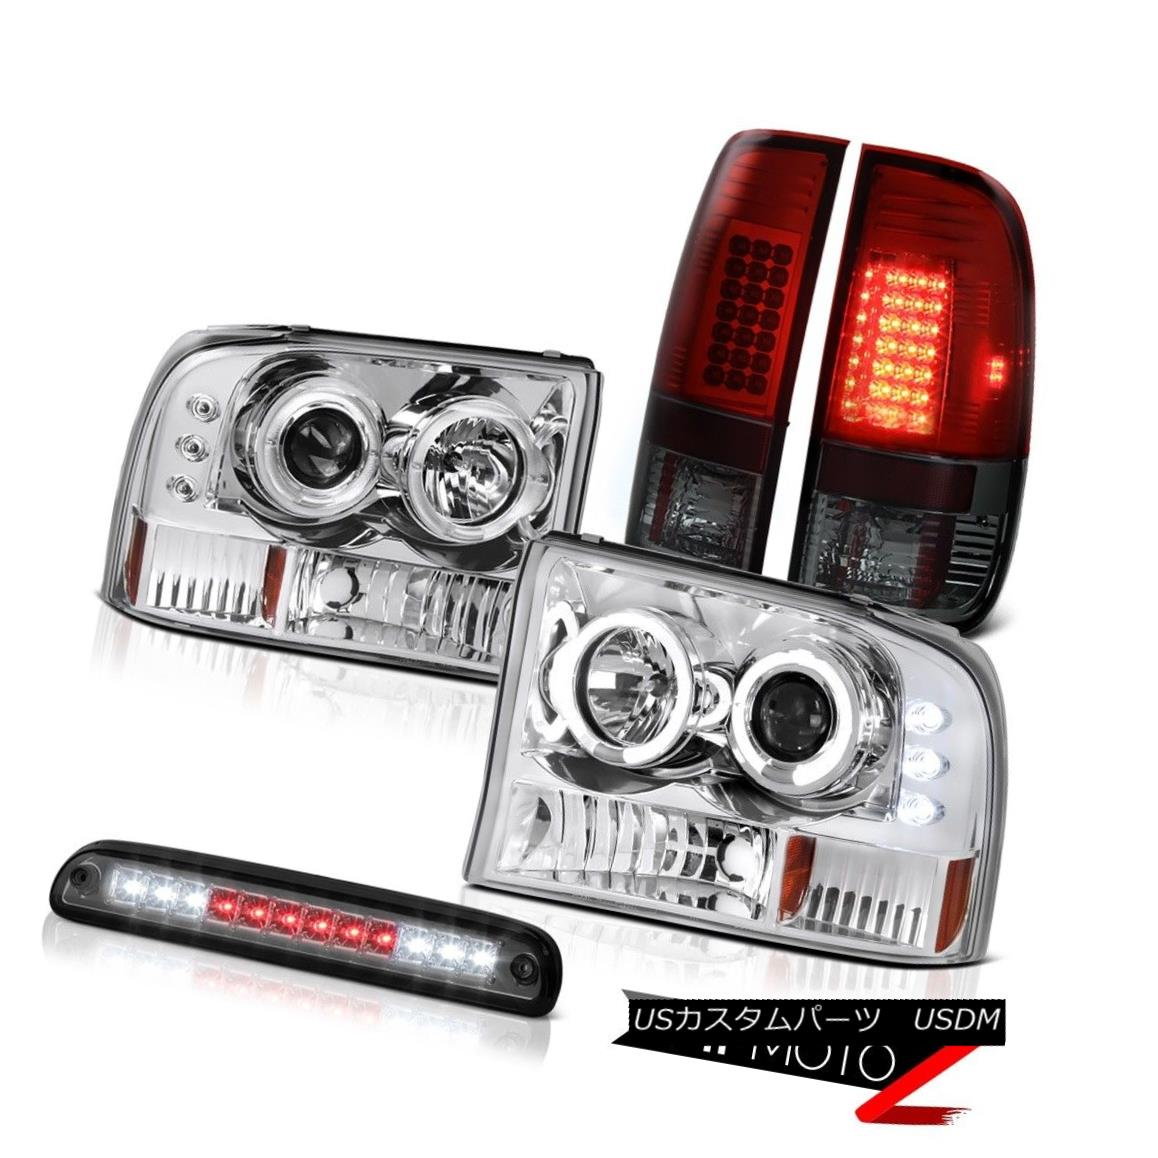 テールライト DRL Halo Headlights High Stop LED Smoke TailLightBurgundy 99-04 Ford F350 SD DRLハローヘッドライトハイストップLEDスモークTailLightBurgu ndy 99-04 Ford F350 SD